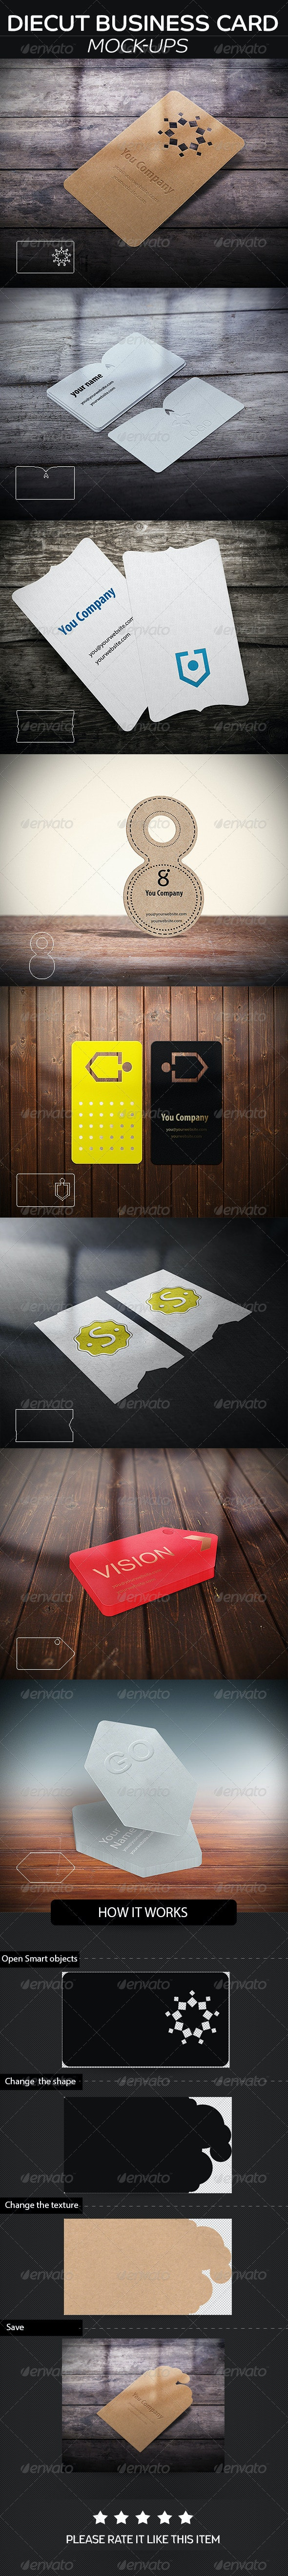 DieCut Business Card  Mockup - Business Cards Print